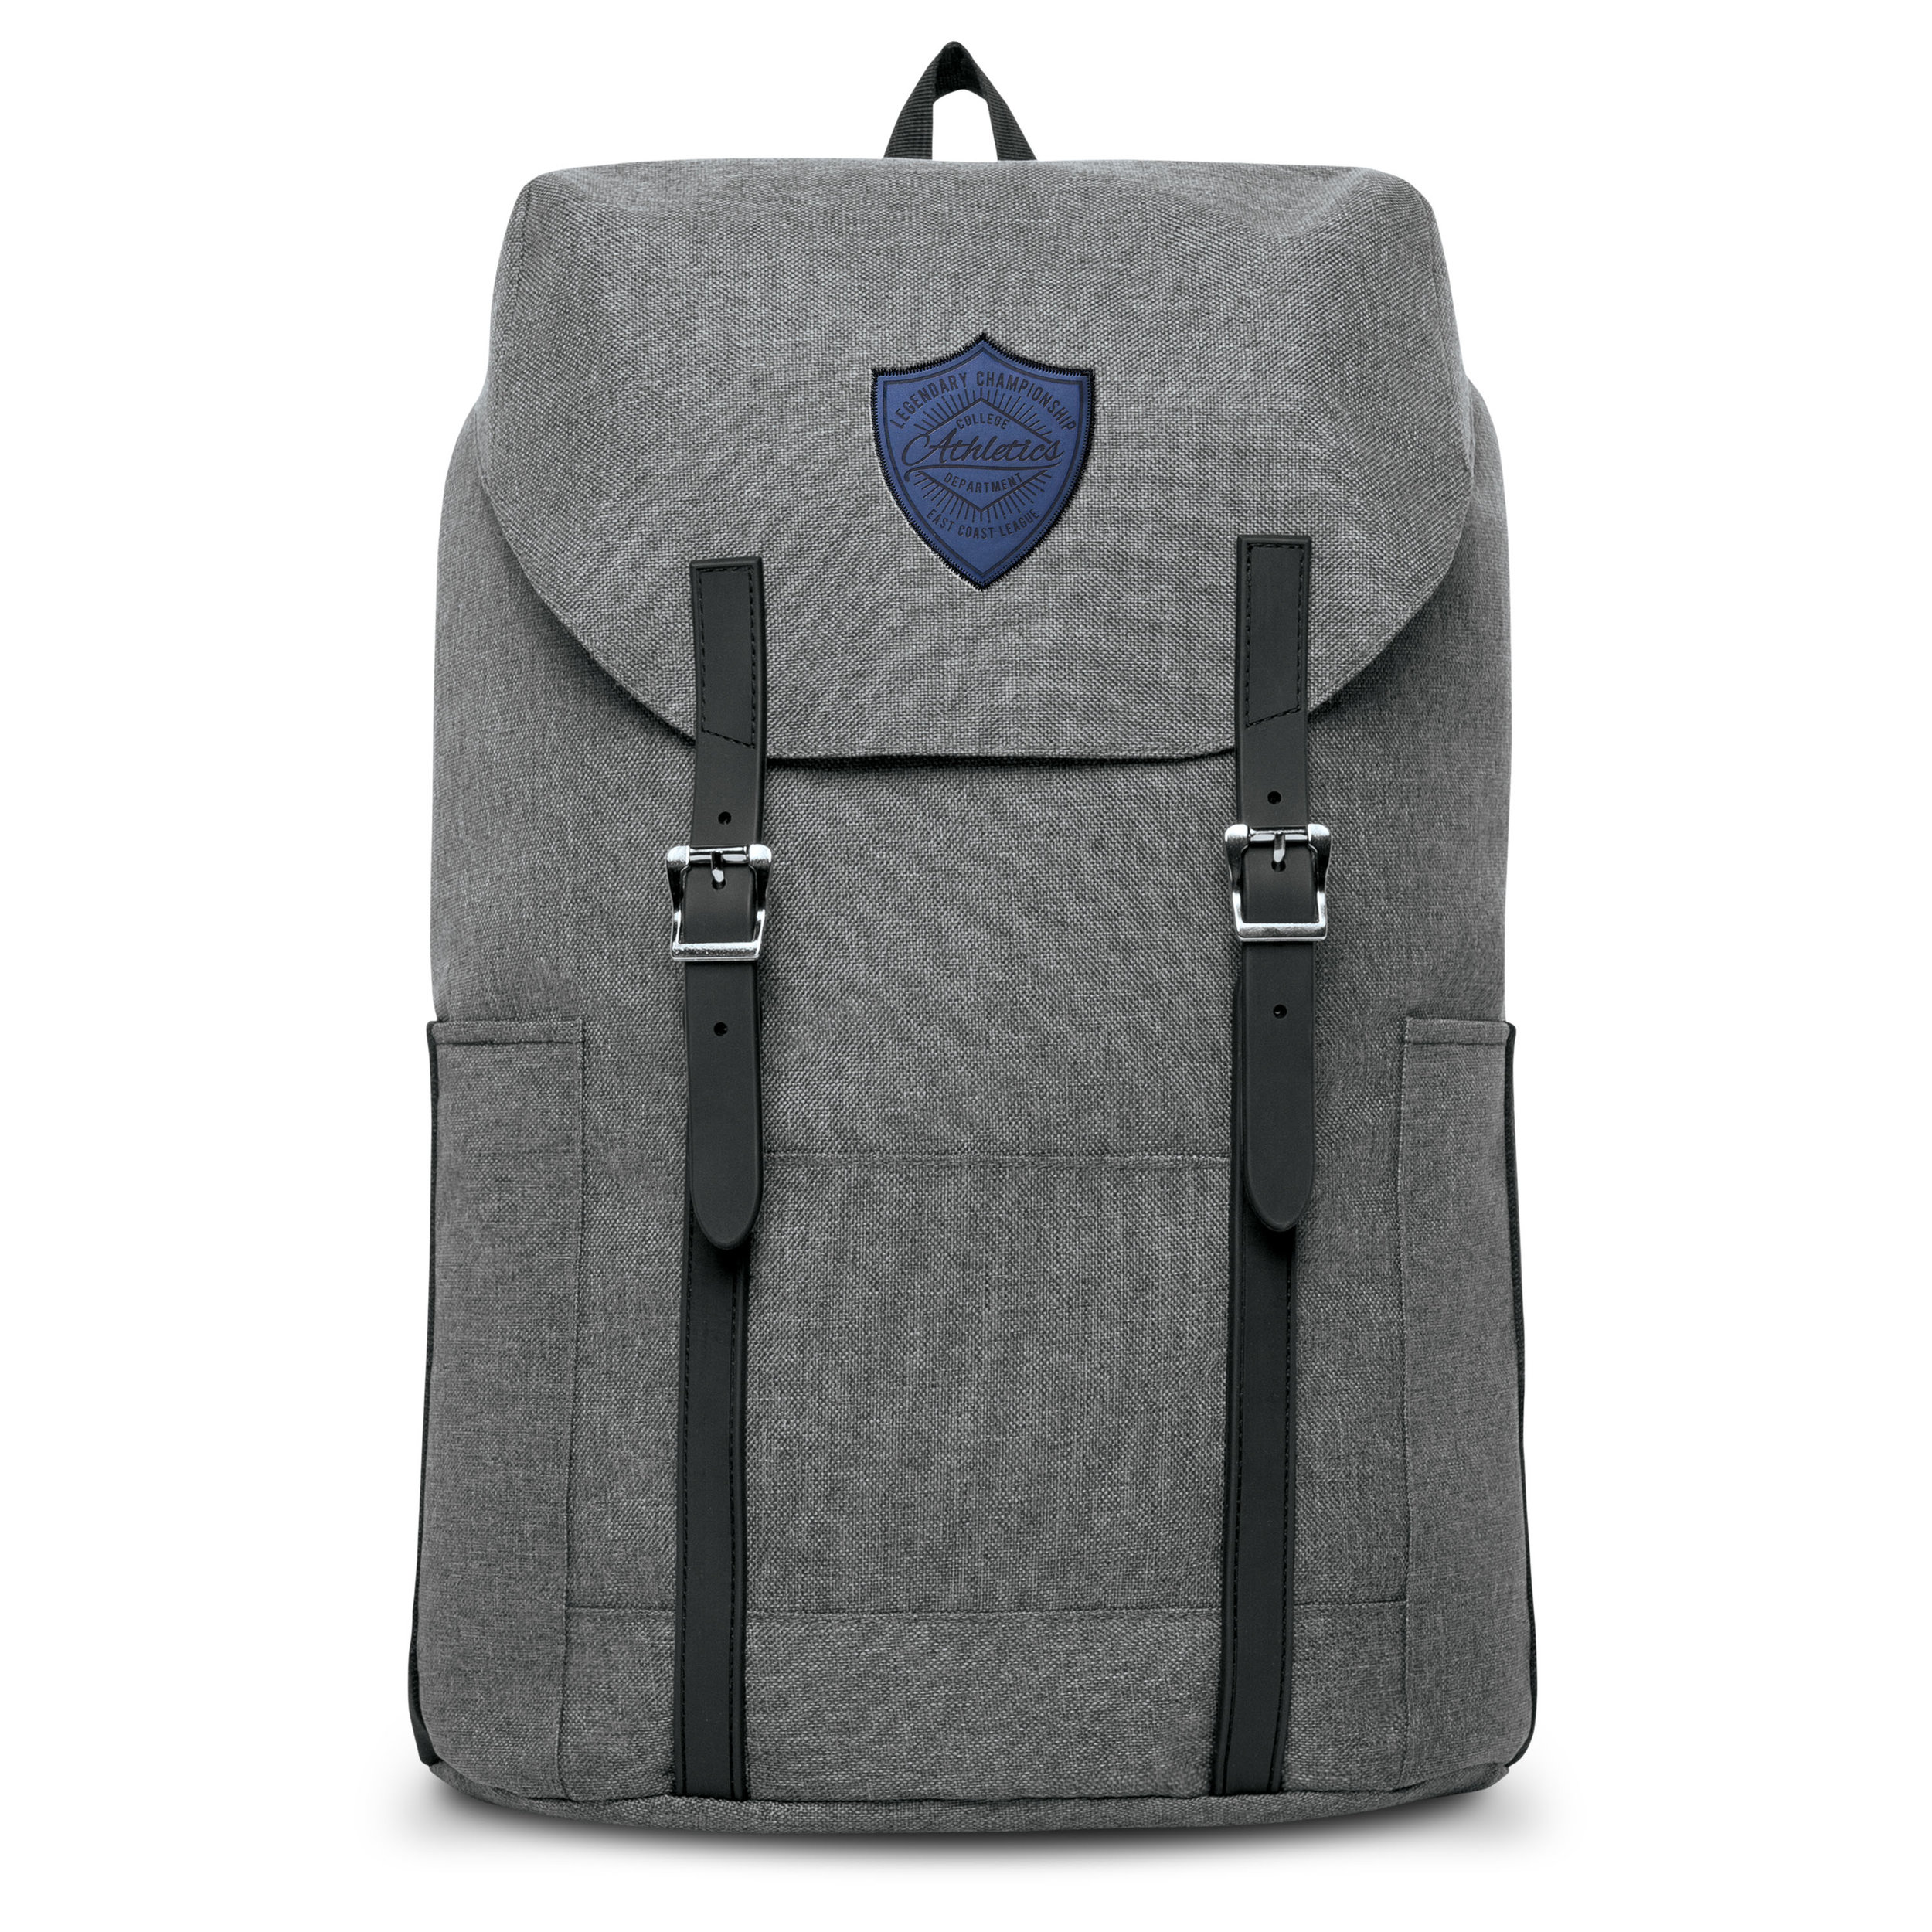 featured-backpack.jpg